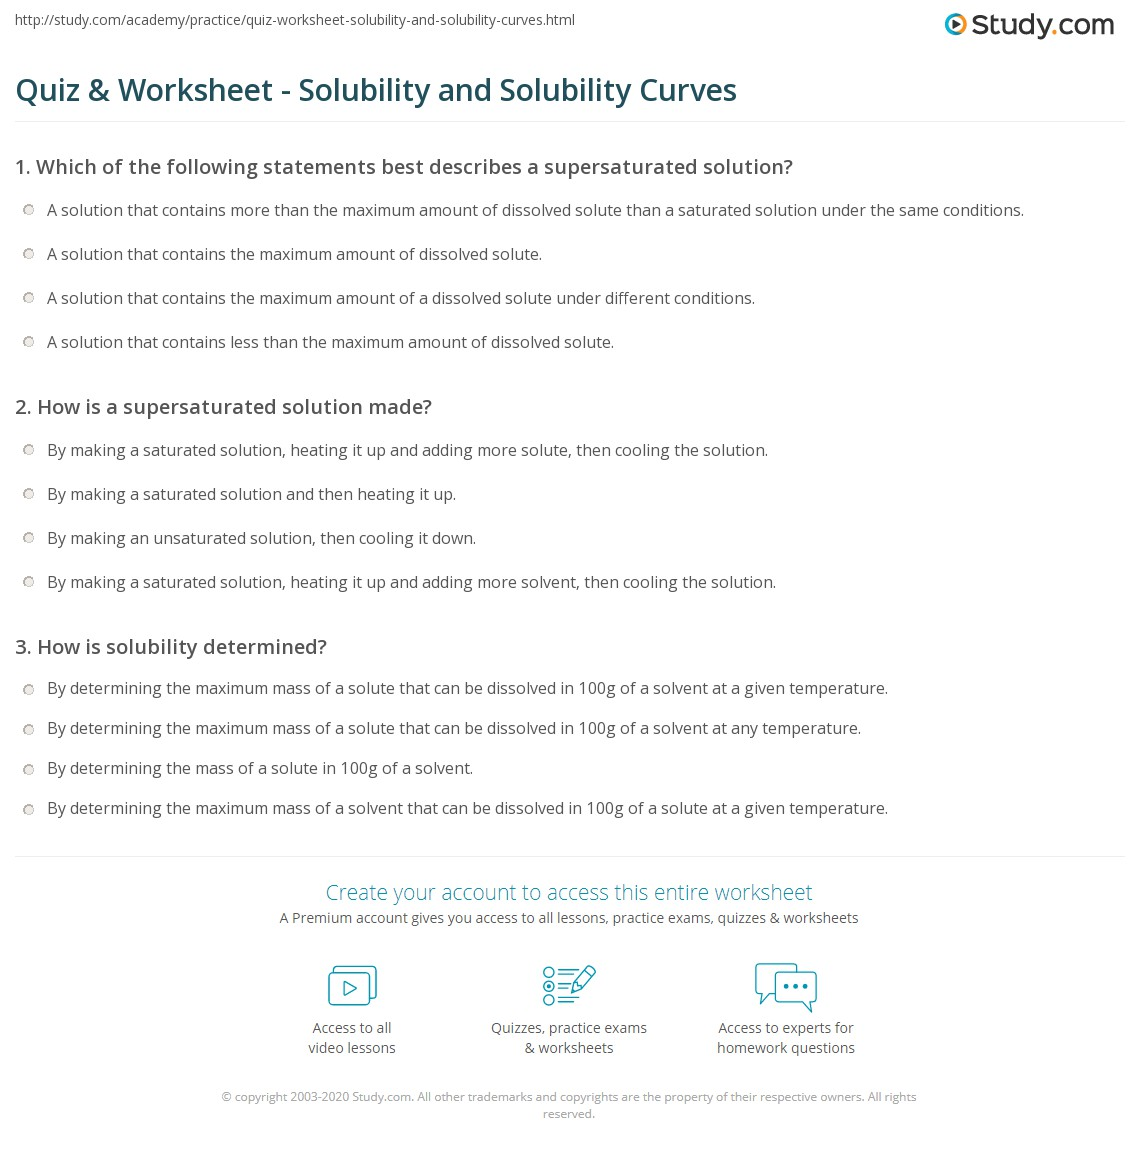 Quiz & Worksheet - Solubility and Solubility Curves | Study.com